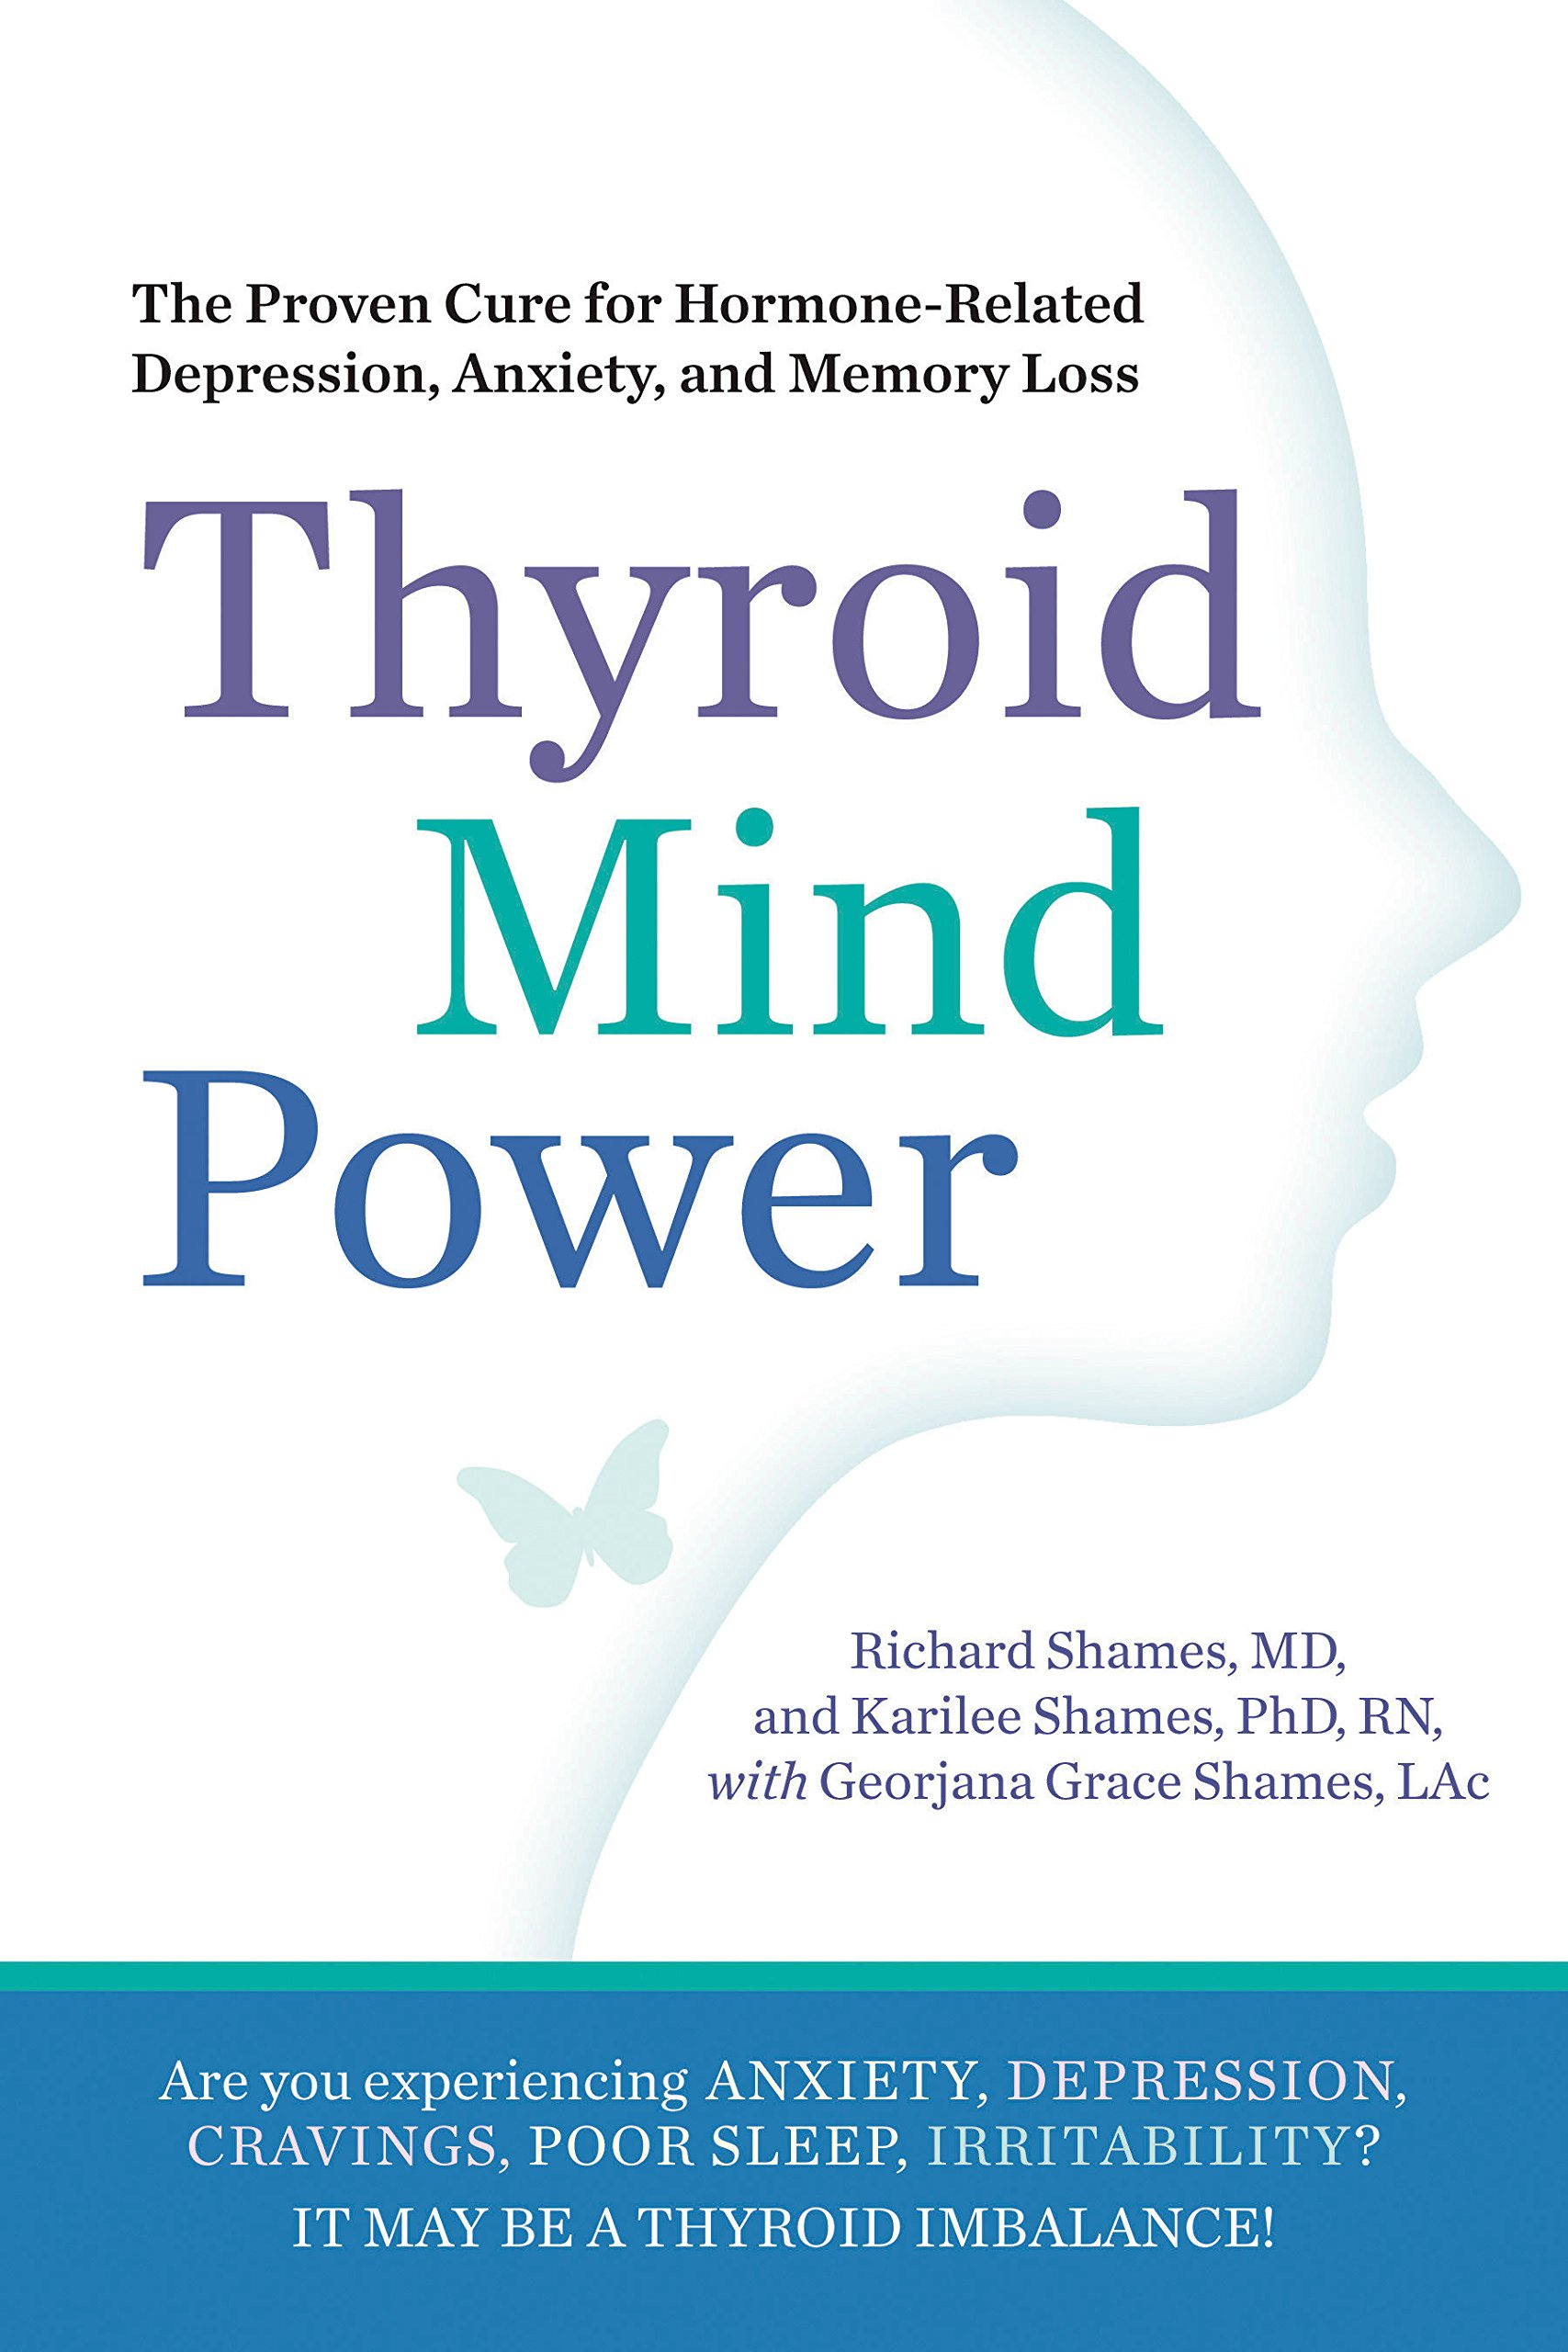 Thyroid Mind Power: The Proven Cure for Hormone-Related Depression